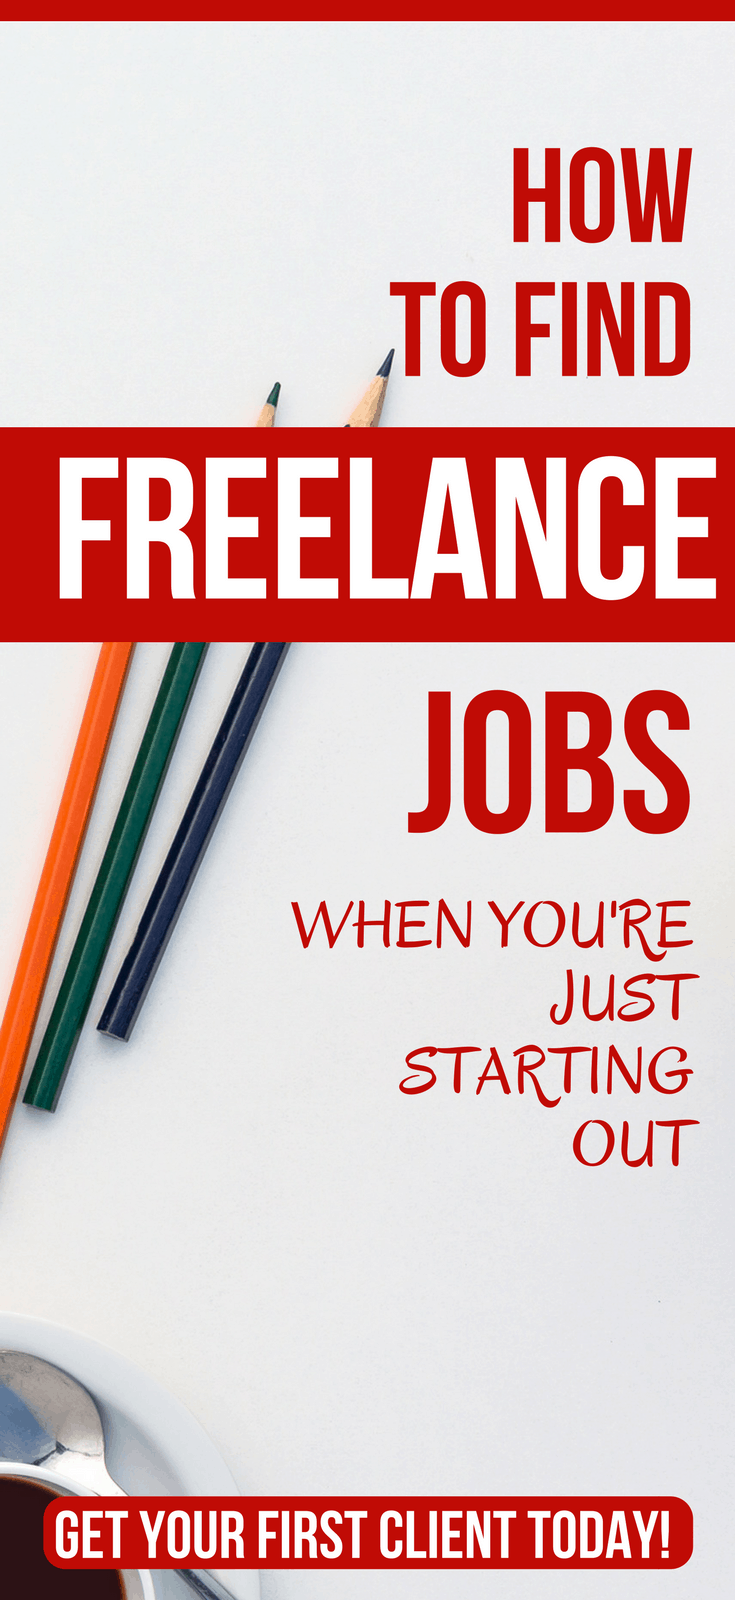 How To Find Quality Freelance Jobs When You're Starting Out How to start freelancing with no experience. Step-by-step from picking your niche to landing your first high-paying client. how to start freelancing | get started freelance writing | get paid to write online | freelance portfolio website #thewaystowealth #freelance #freelancing #sidehustle